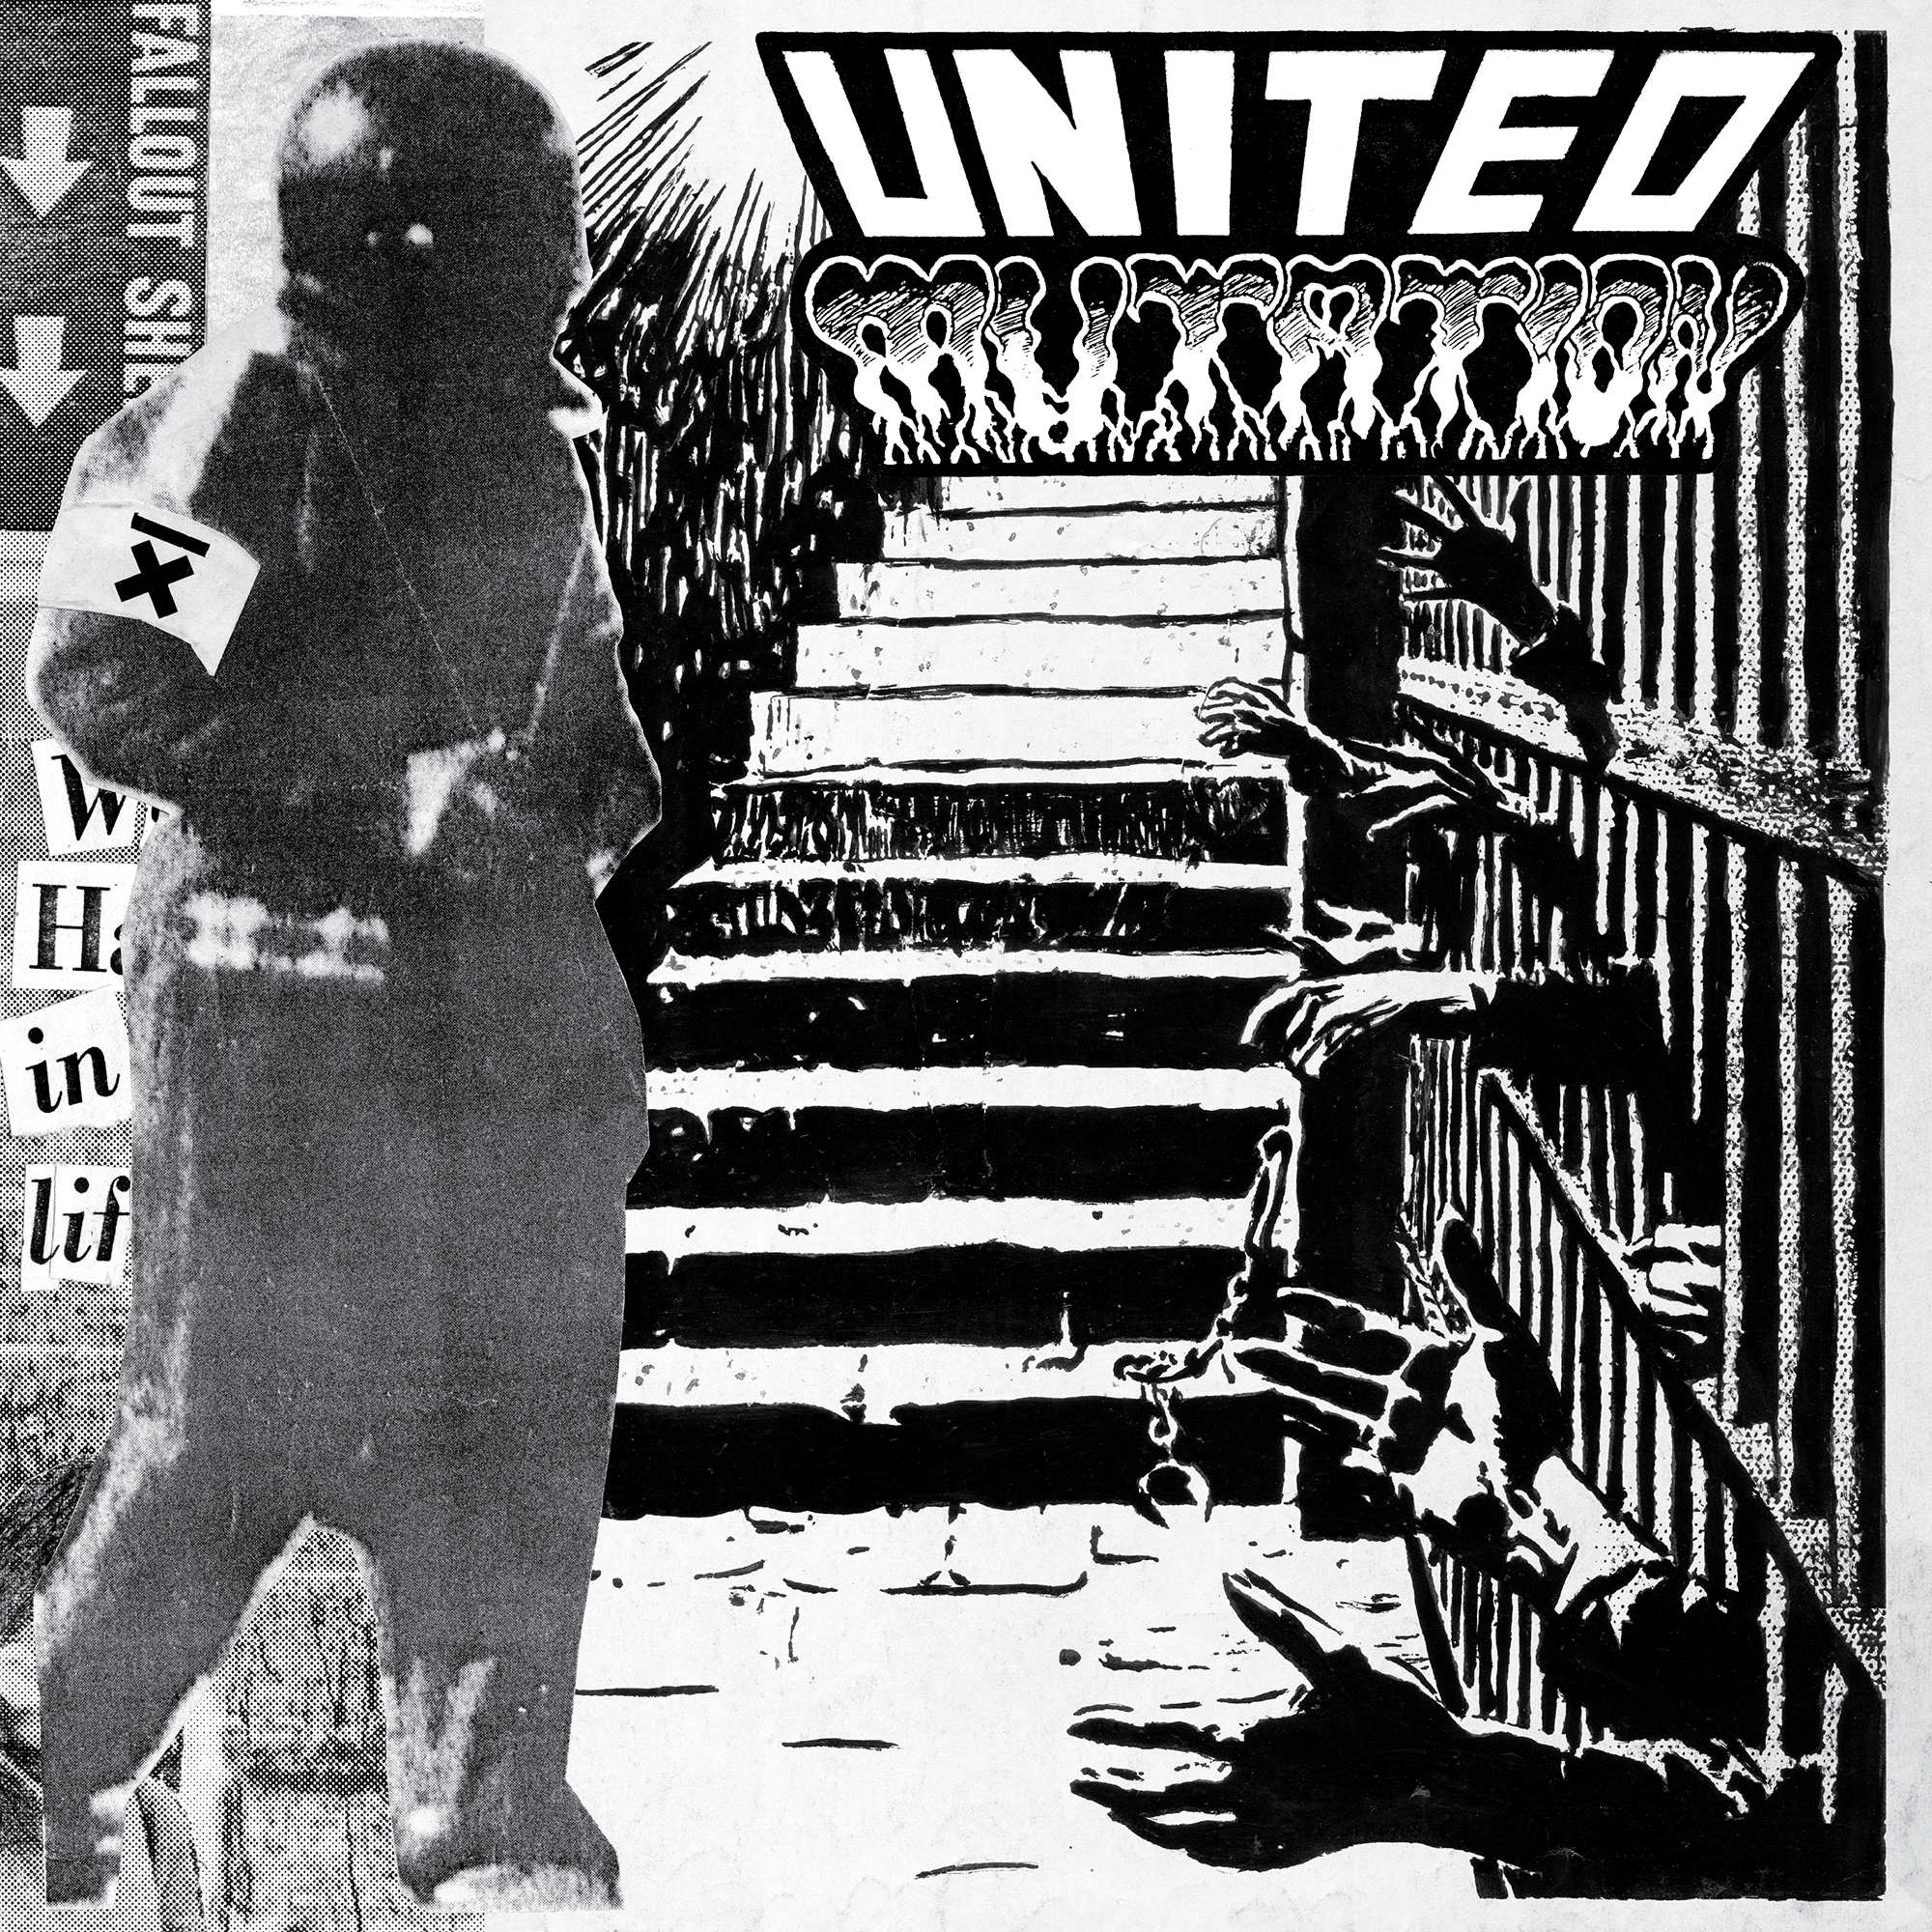 United Mutation - Dark Self Image - 1982/1983